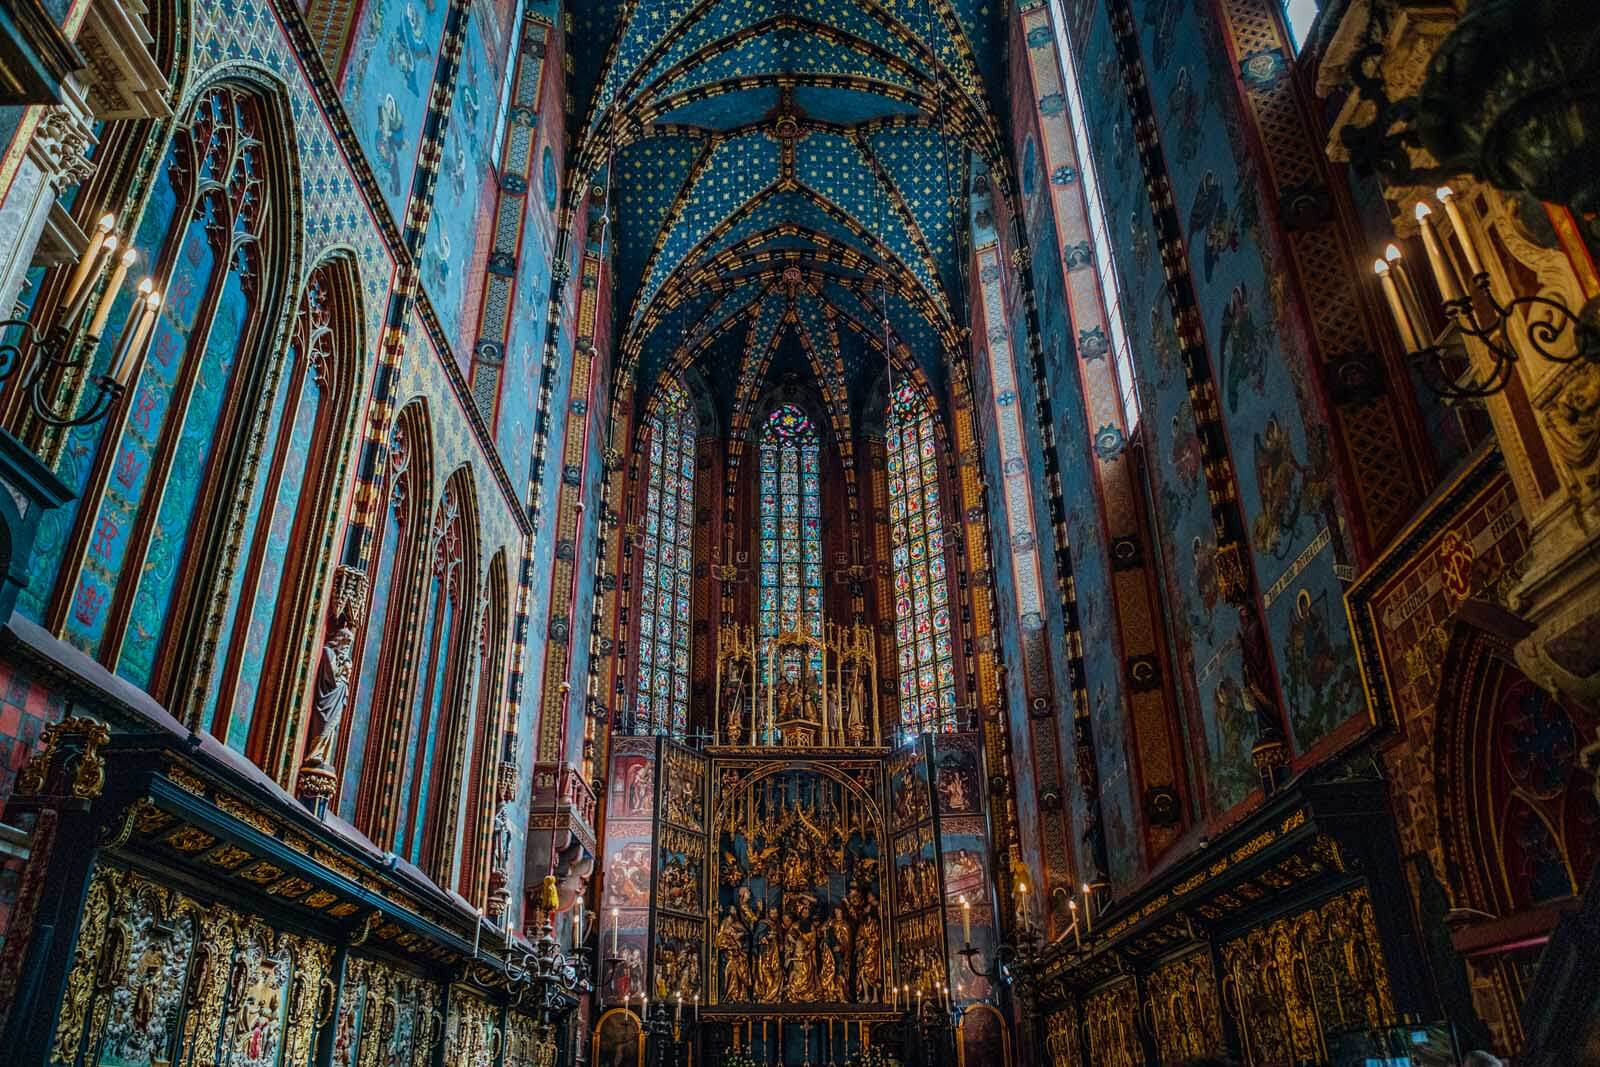 The gorgeous inside of St. Mary's Basilica in Krakow